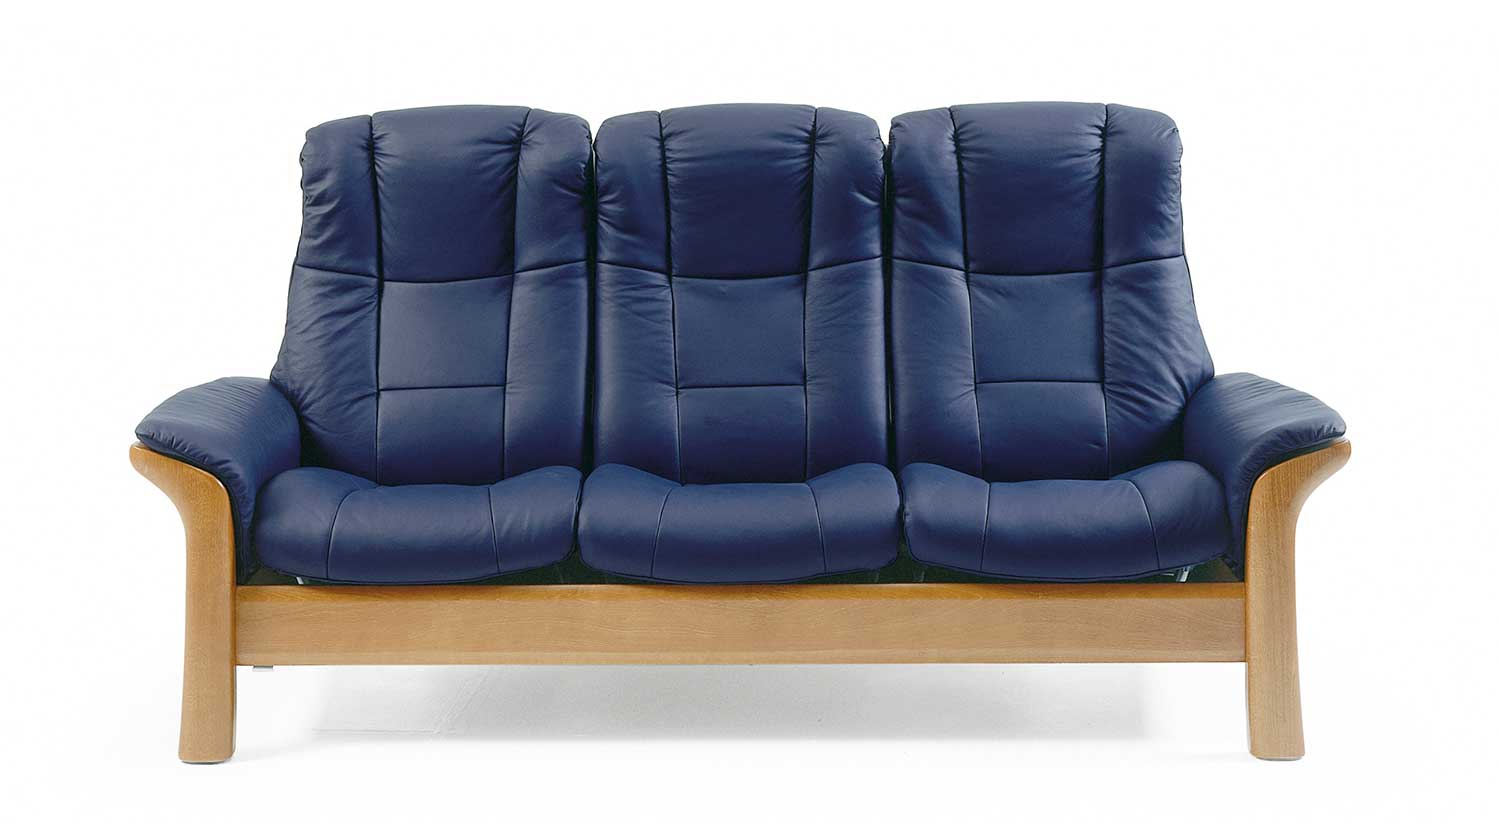 Stressless Chair Prices Circle Furniture Windsor Stressless Highback Sofa